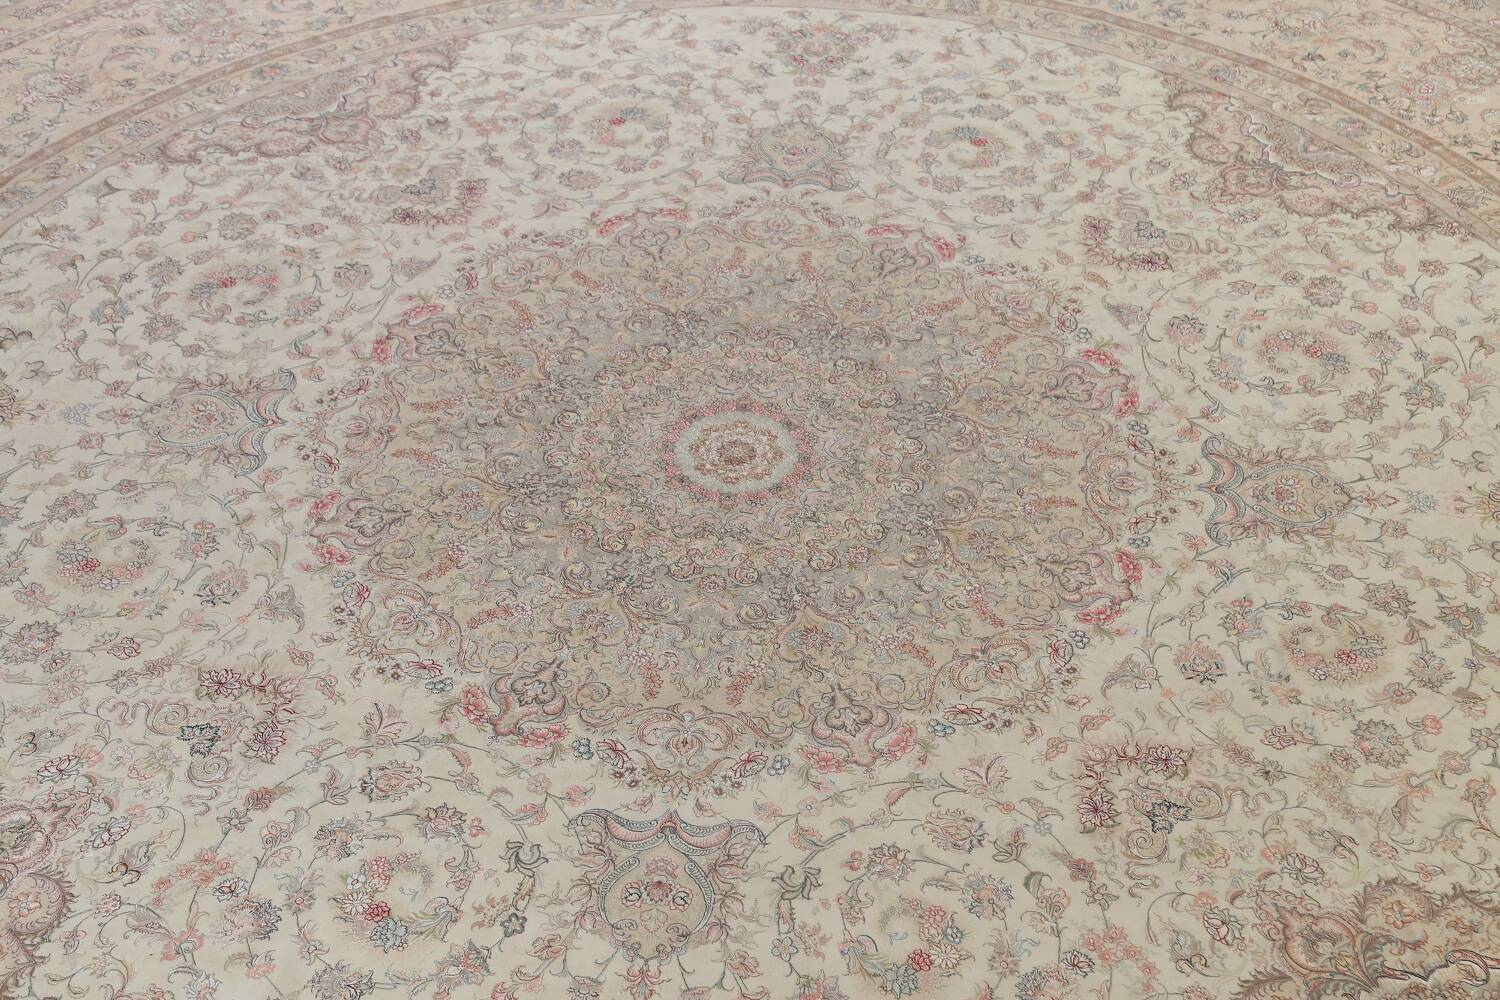 100% Vegetable Dye Floral Tabriz Persian Area Rug 22x23 Round image 4